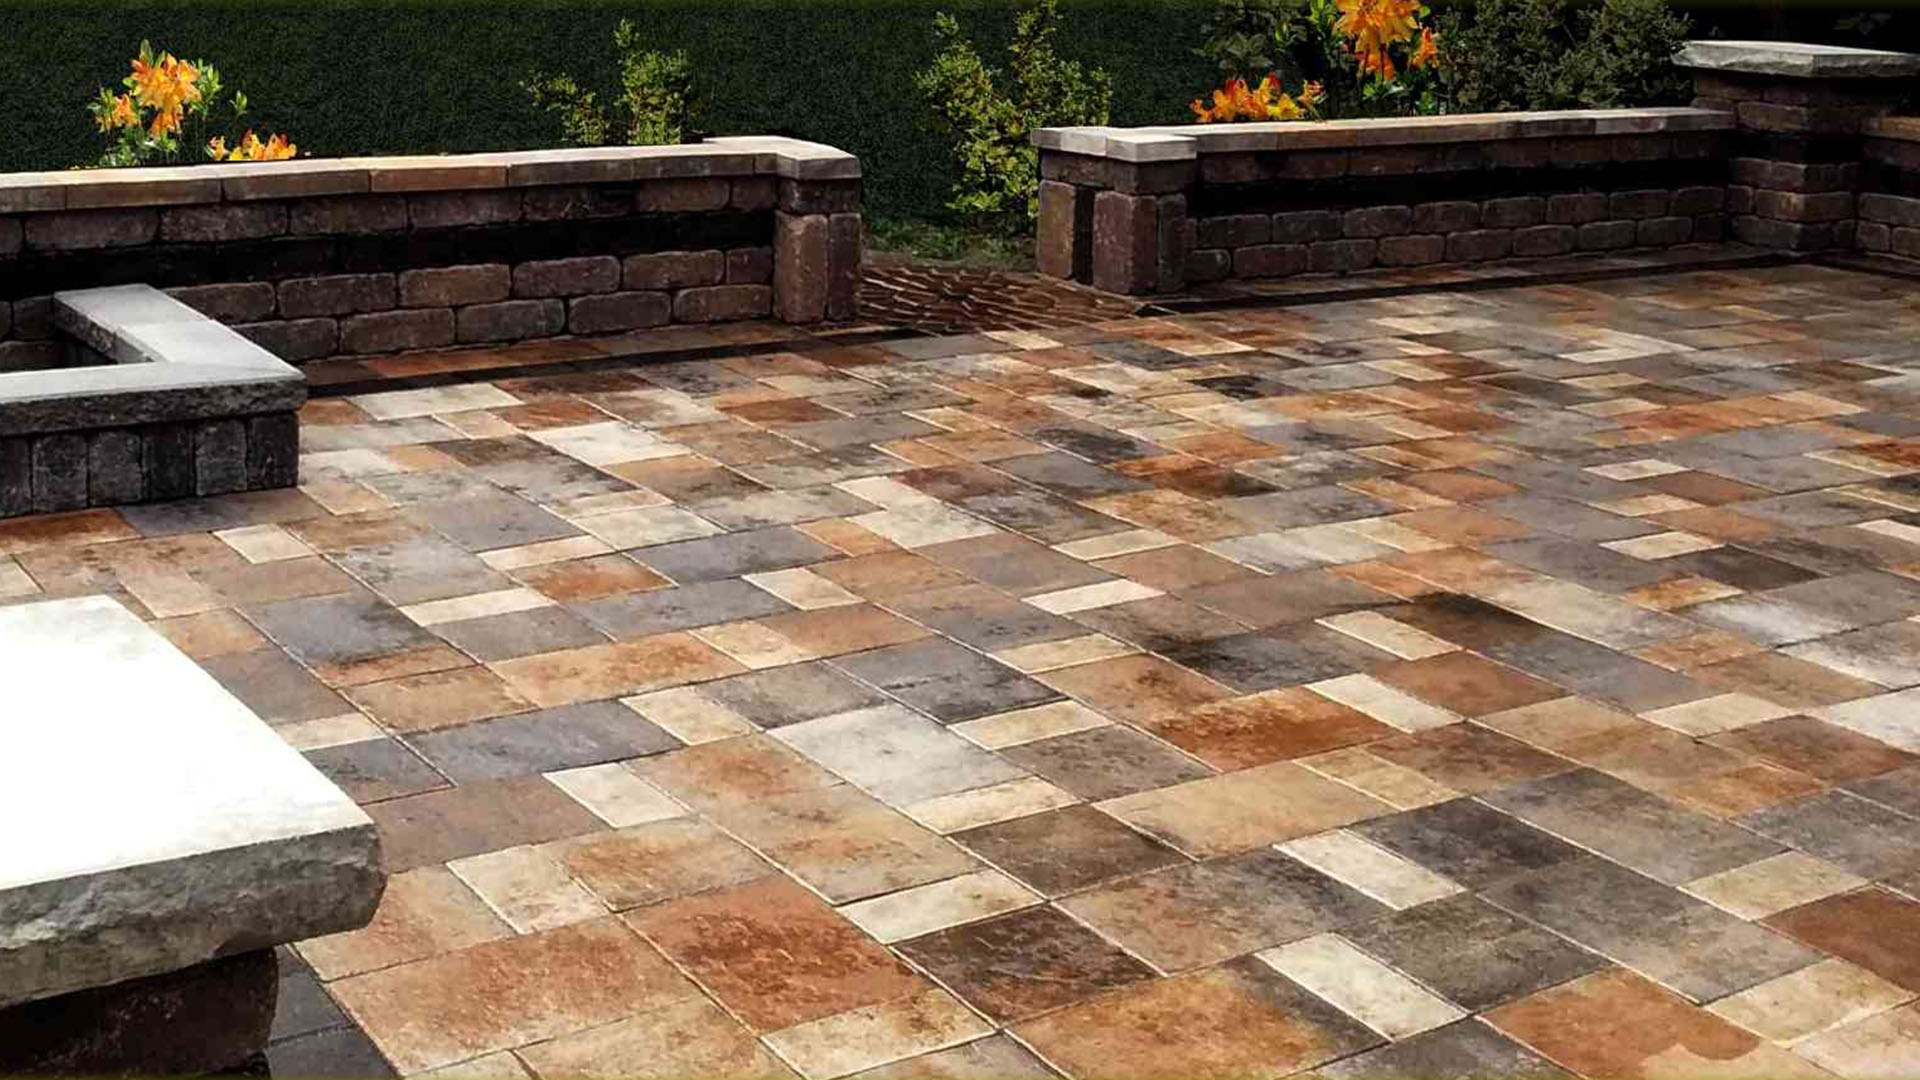 All Type Landscape Retaining Walls, Drainage and Pavers slide 2